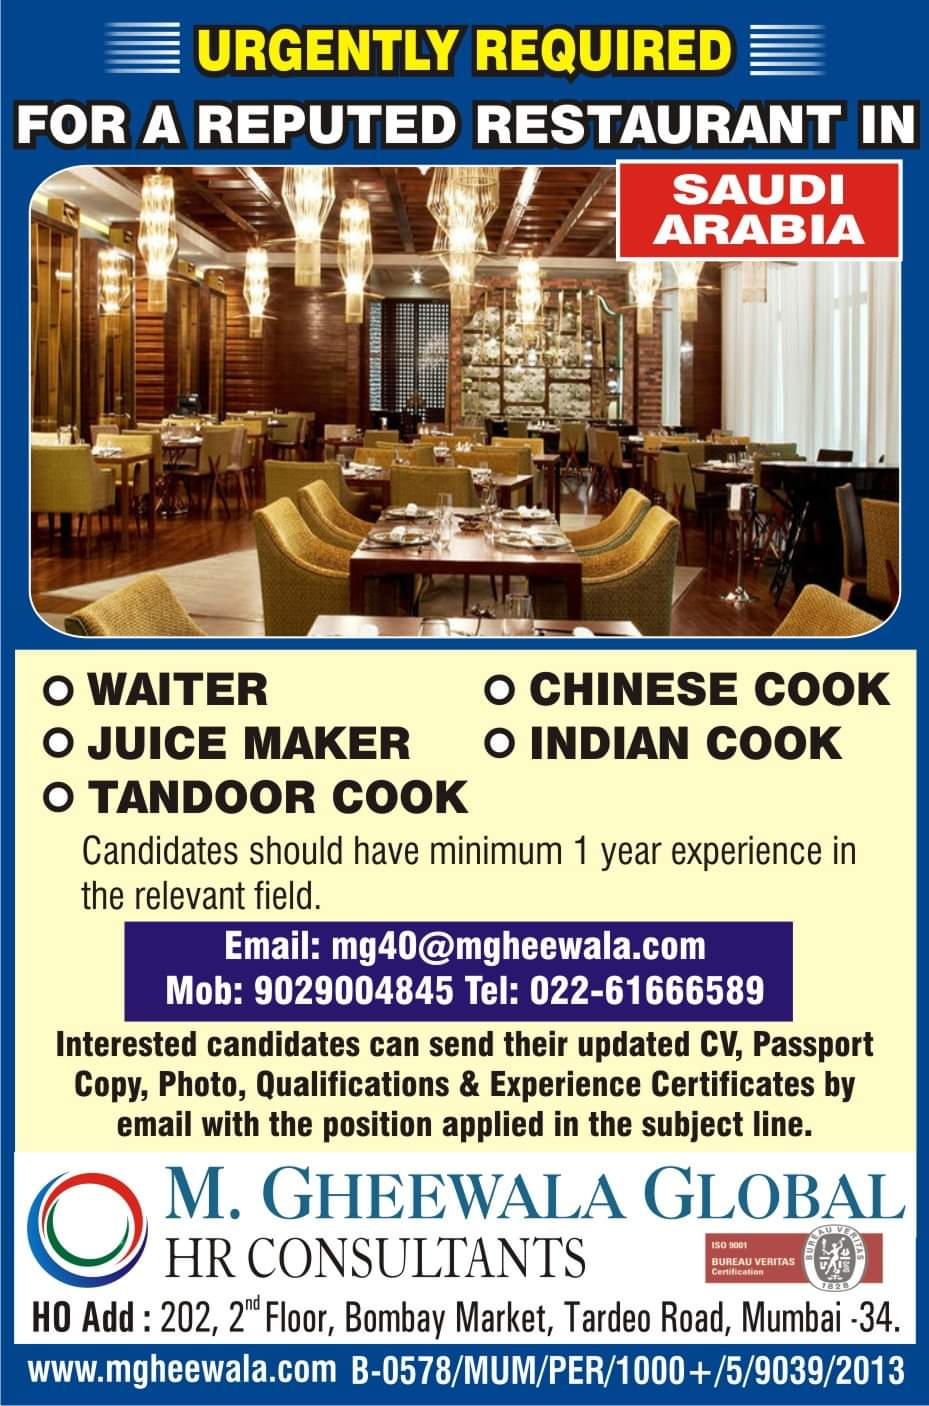 URGENTLY REQUIRED FOR RESTAURANT IN SAUDI ARABIA